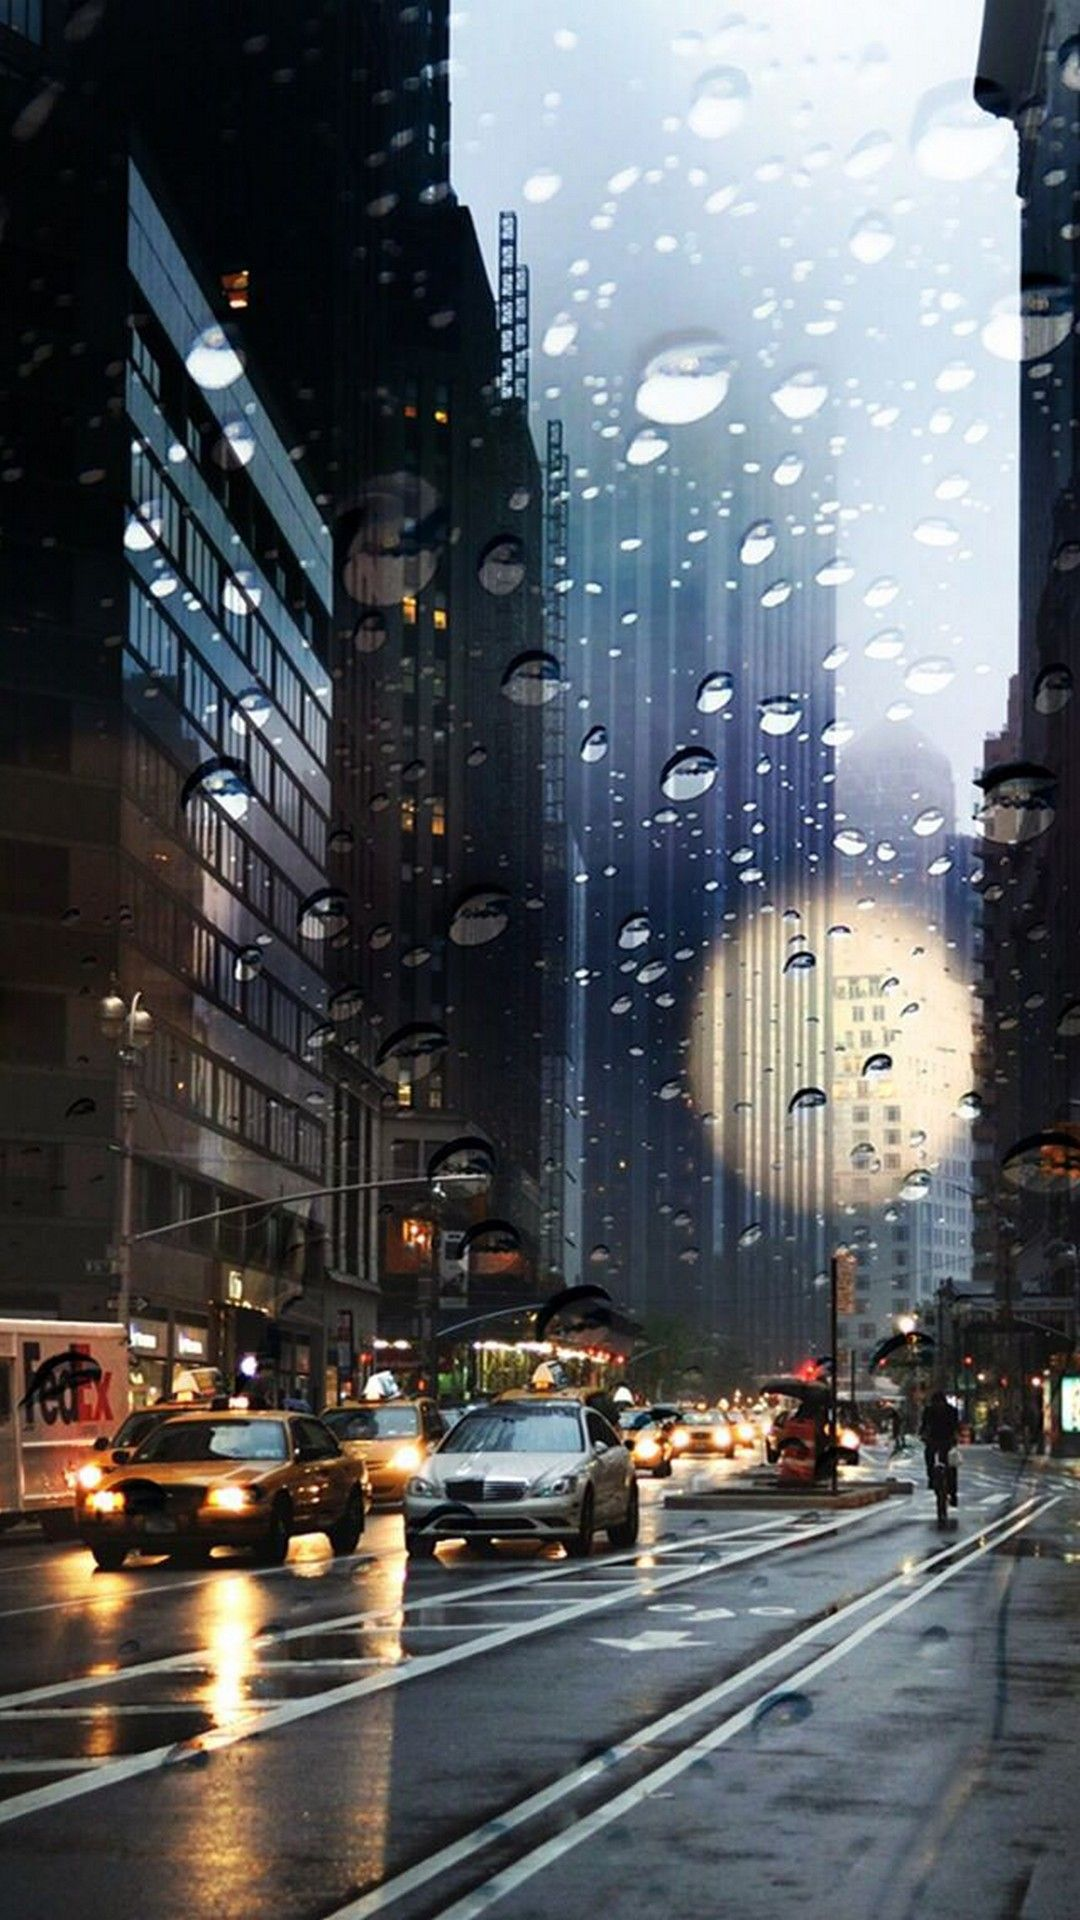 Stunning Iphone Wallpapers For Iphone 11 And Iphone 11 Pro Stunning Wallpapers City Wallpaper New York Wallpaper